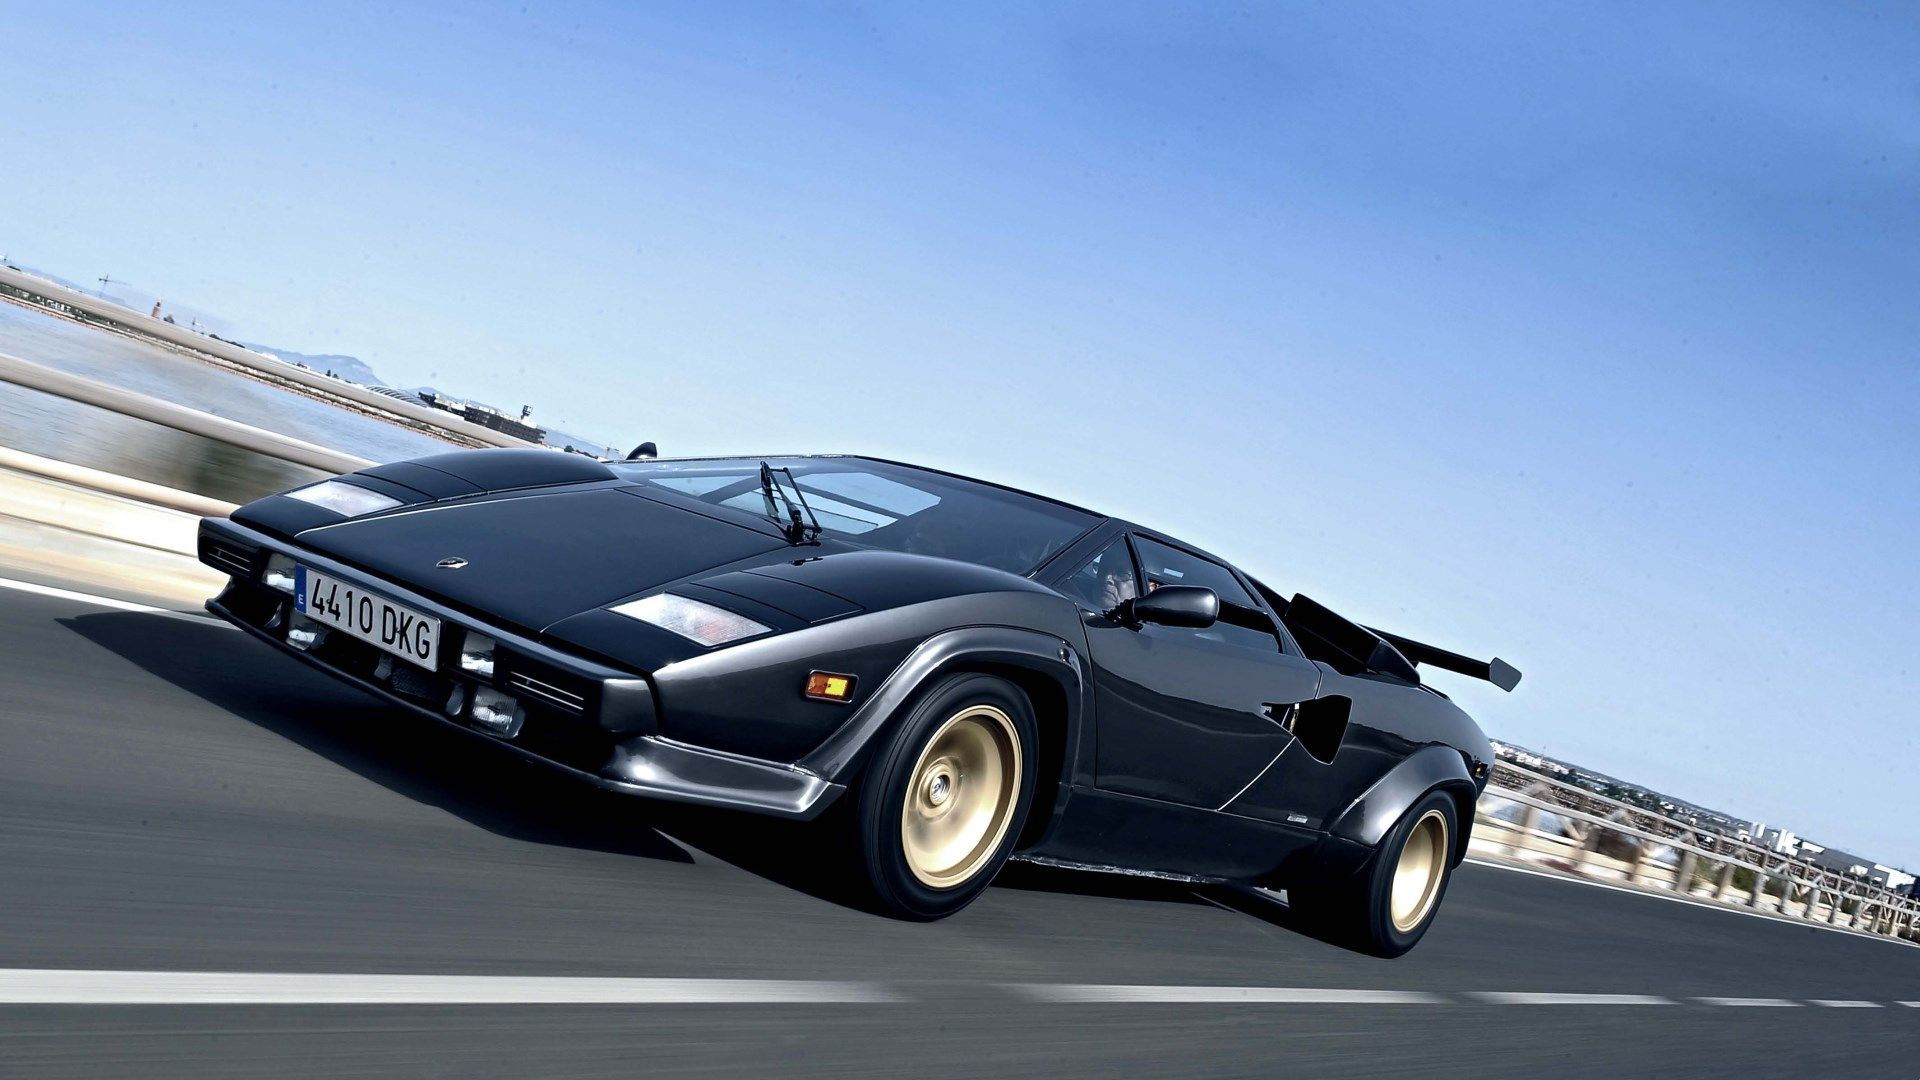 1920x1080 Px Pictures For Desktop Lamborghini Countach Wallpaper By Happy Williams For Pocketfullofgrace Lamborghini Countach Lamborghini Sesto Lamborghini